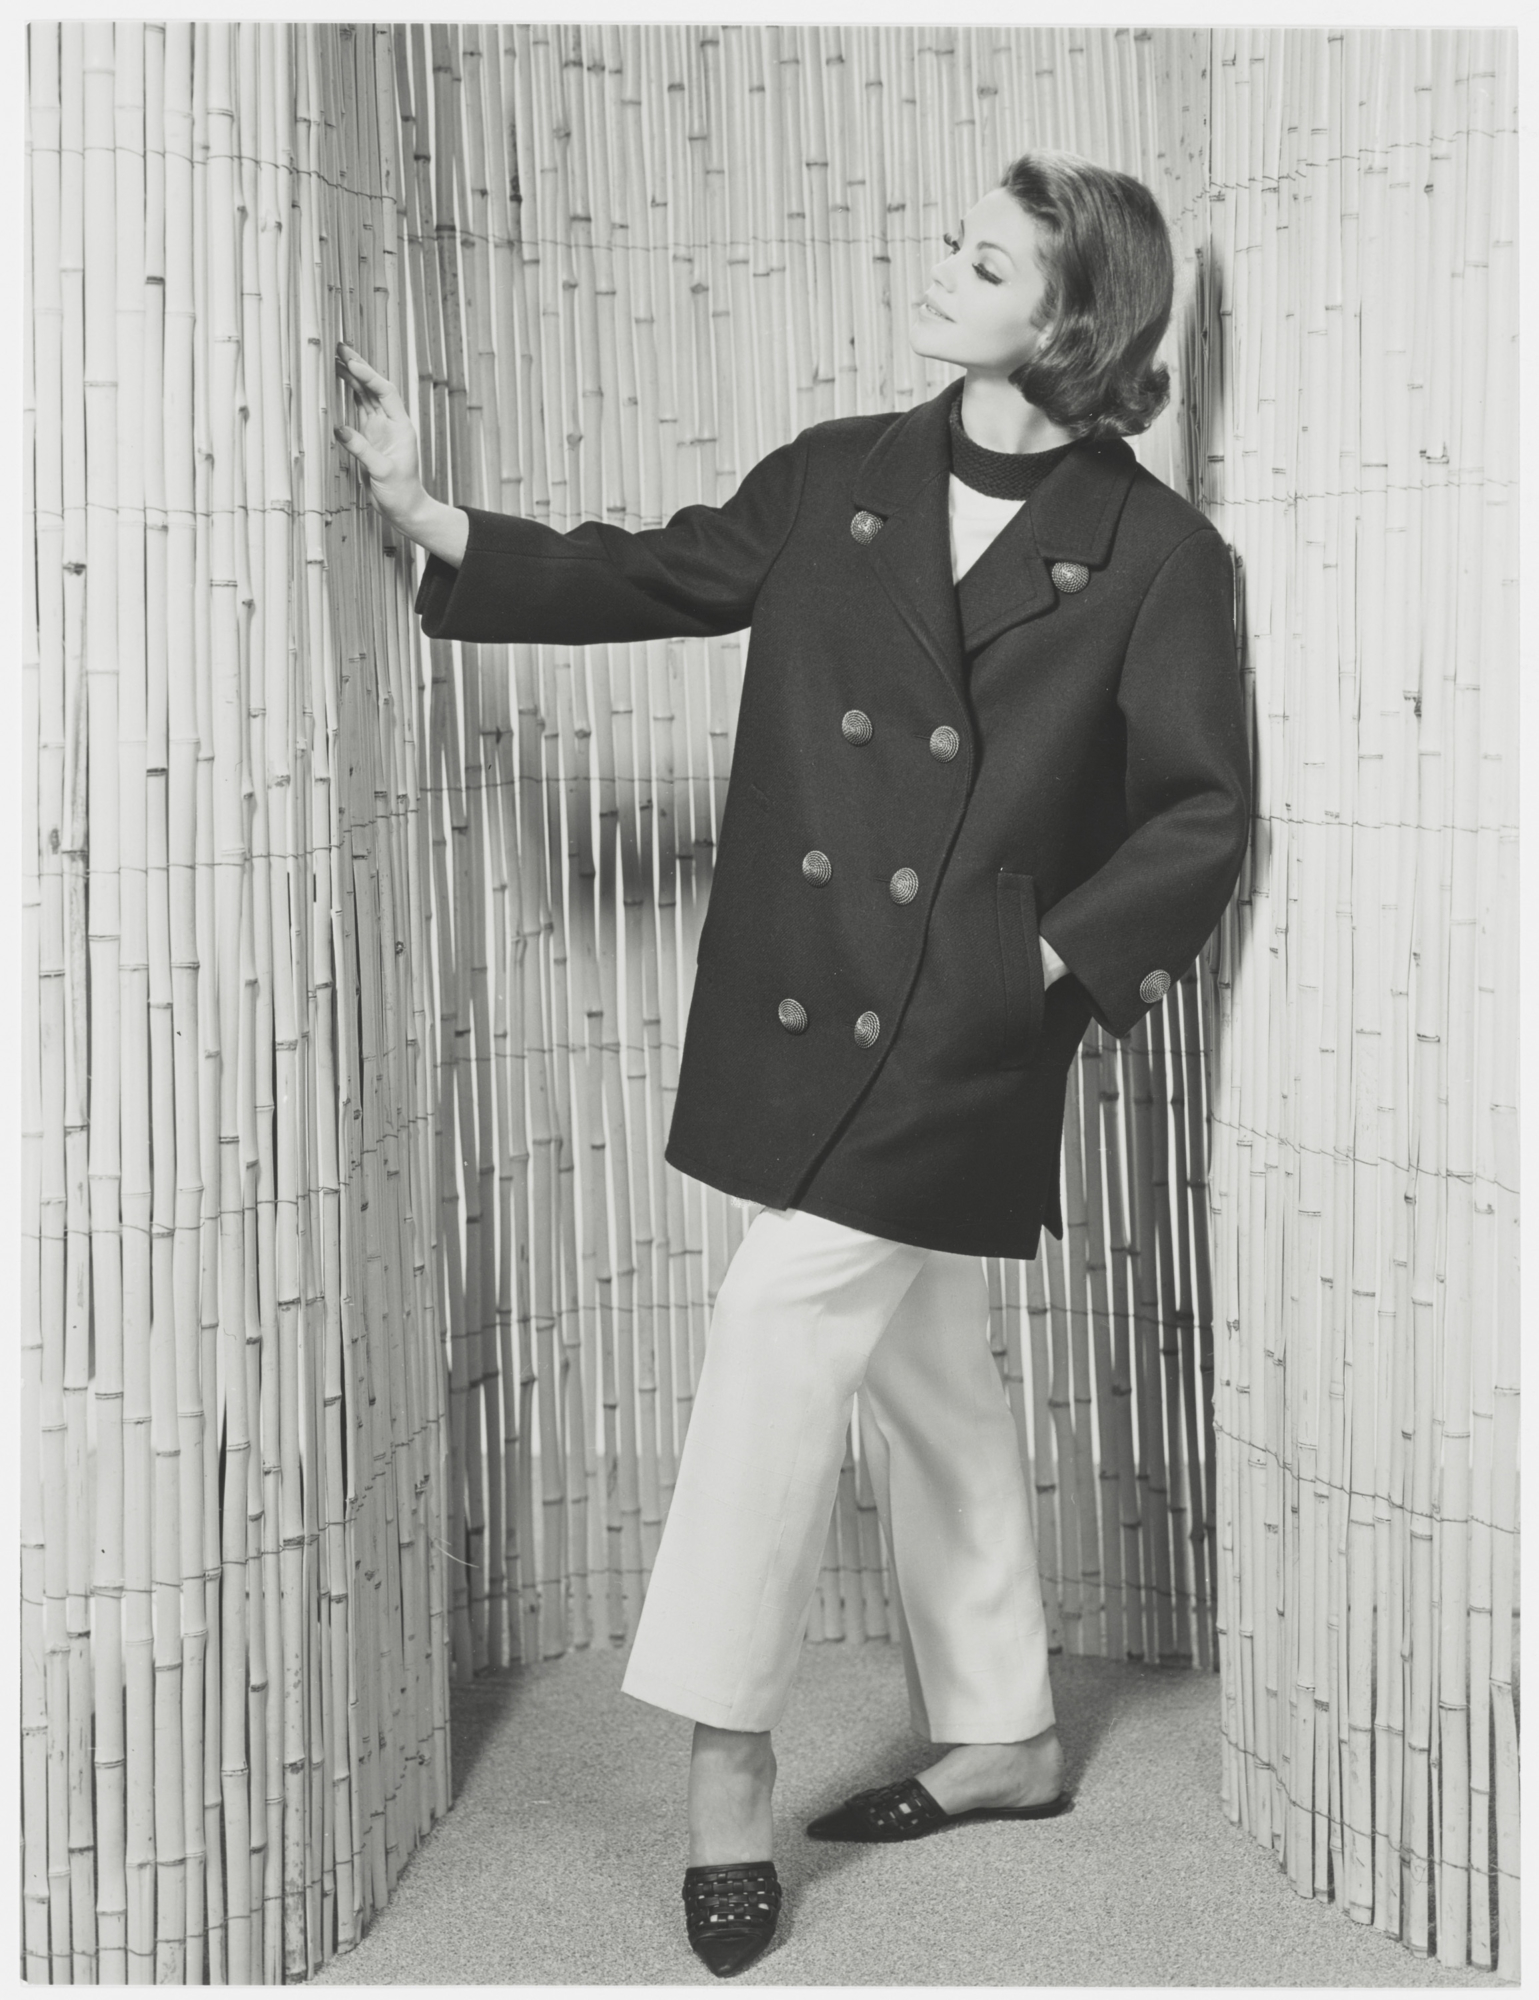 92c1a174546 First pea coat. Spring-summer 1962 haute couture collection. Photograph by  the Séeberger brothers.